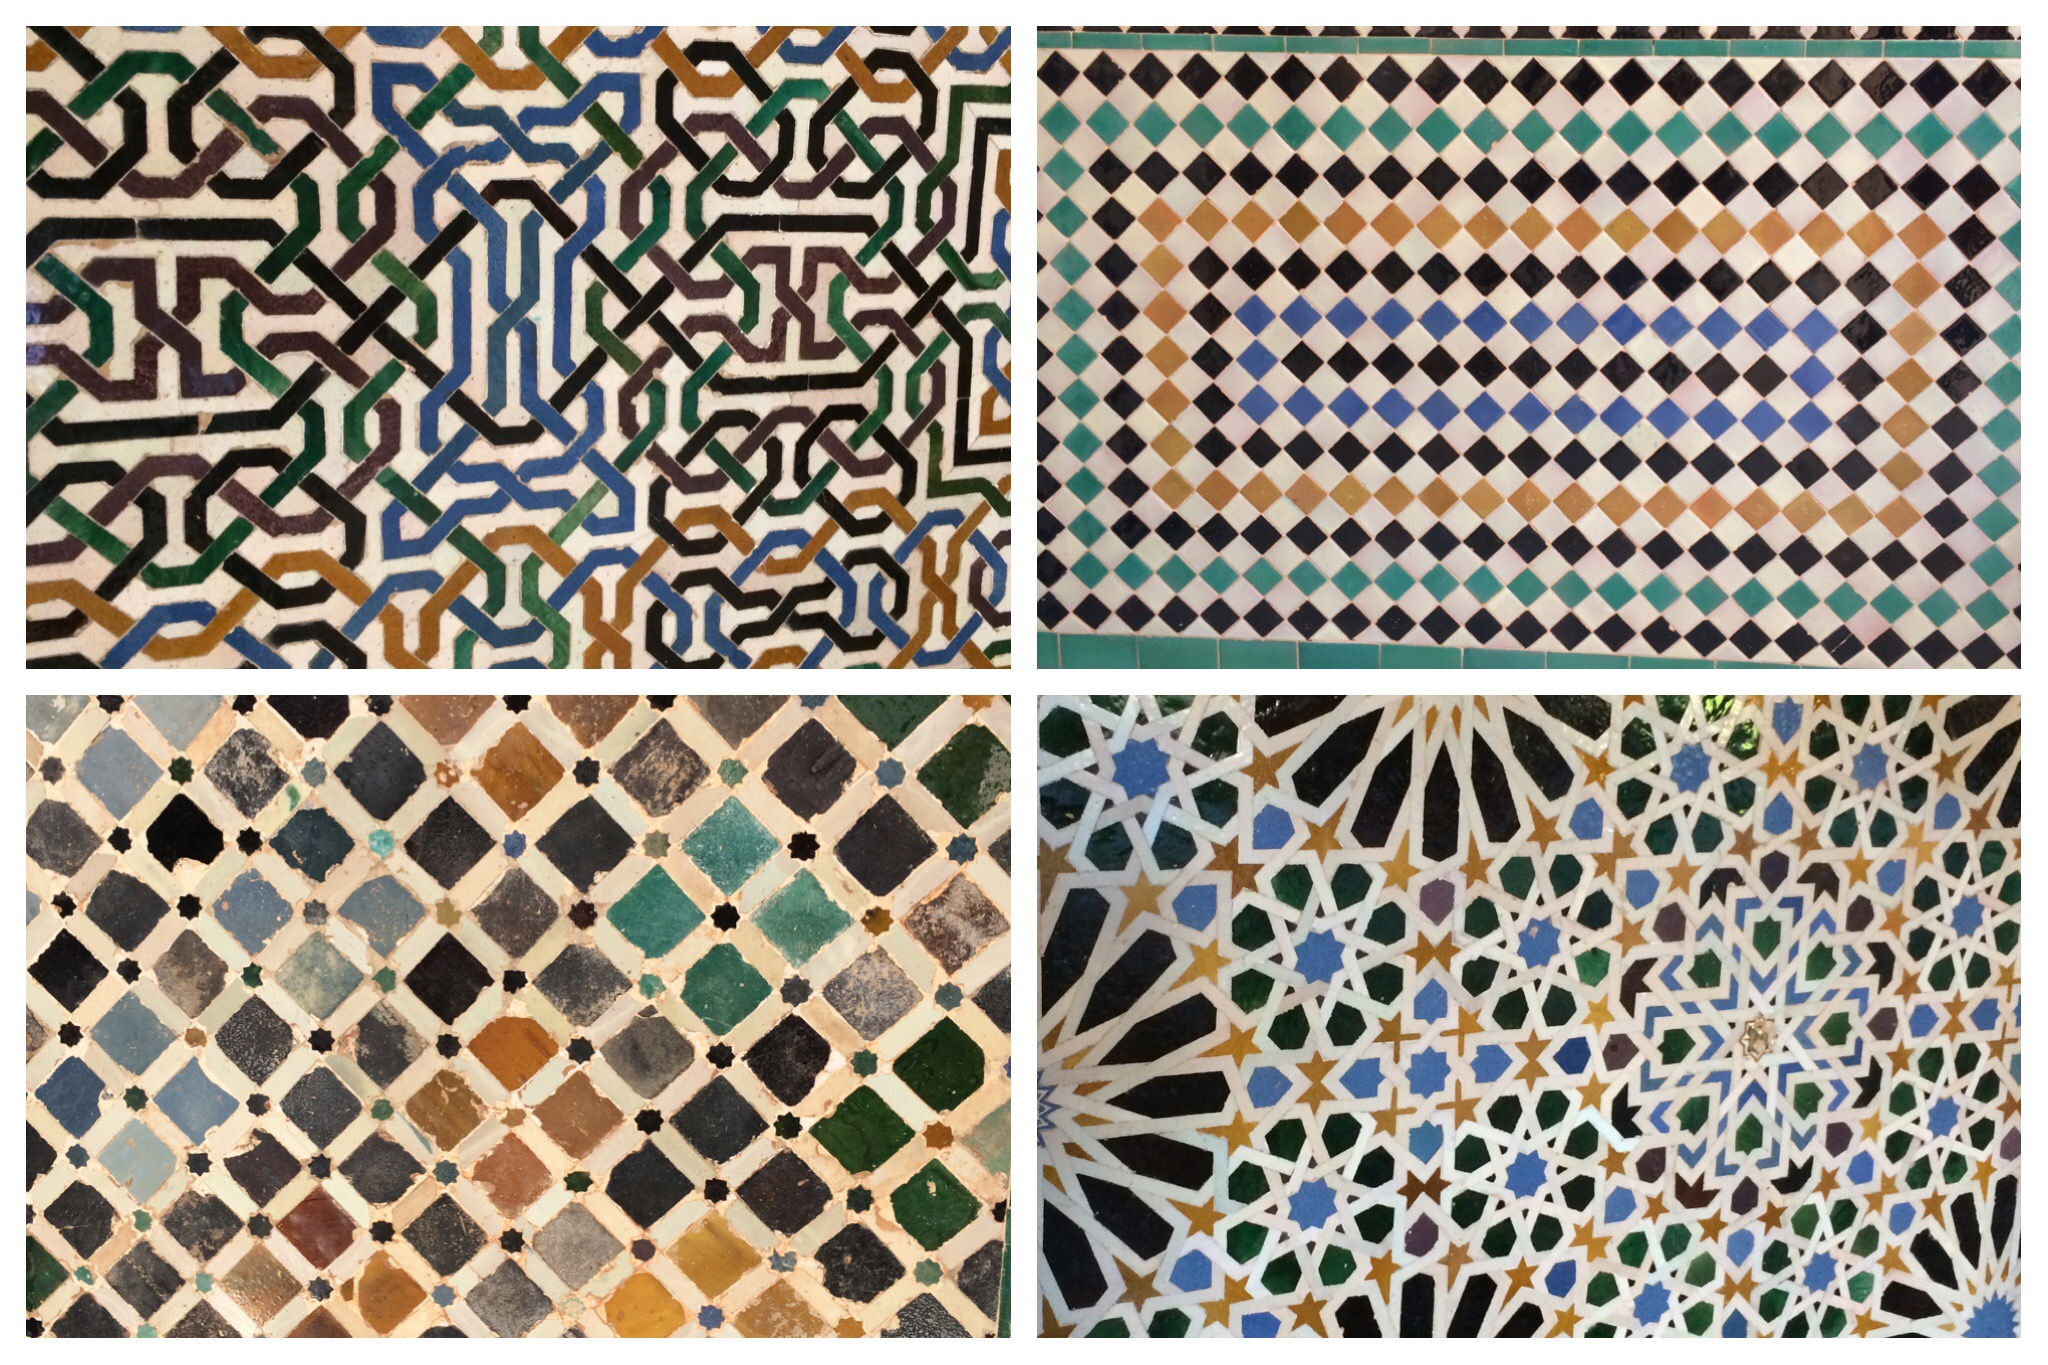 Alhambra Granada Spain - patterns everywhere